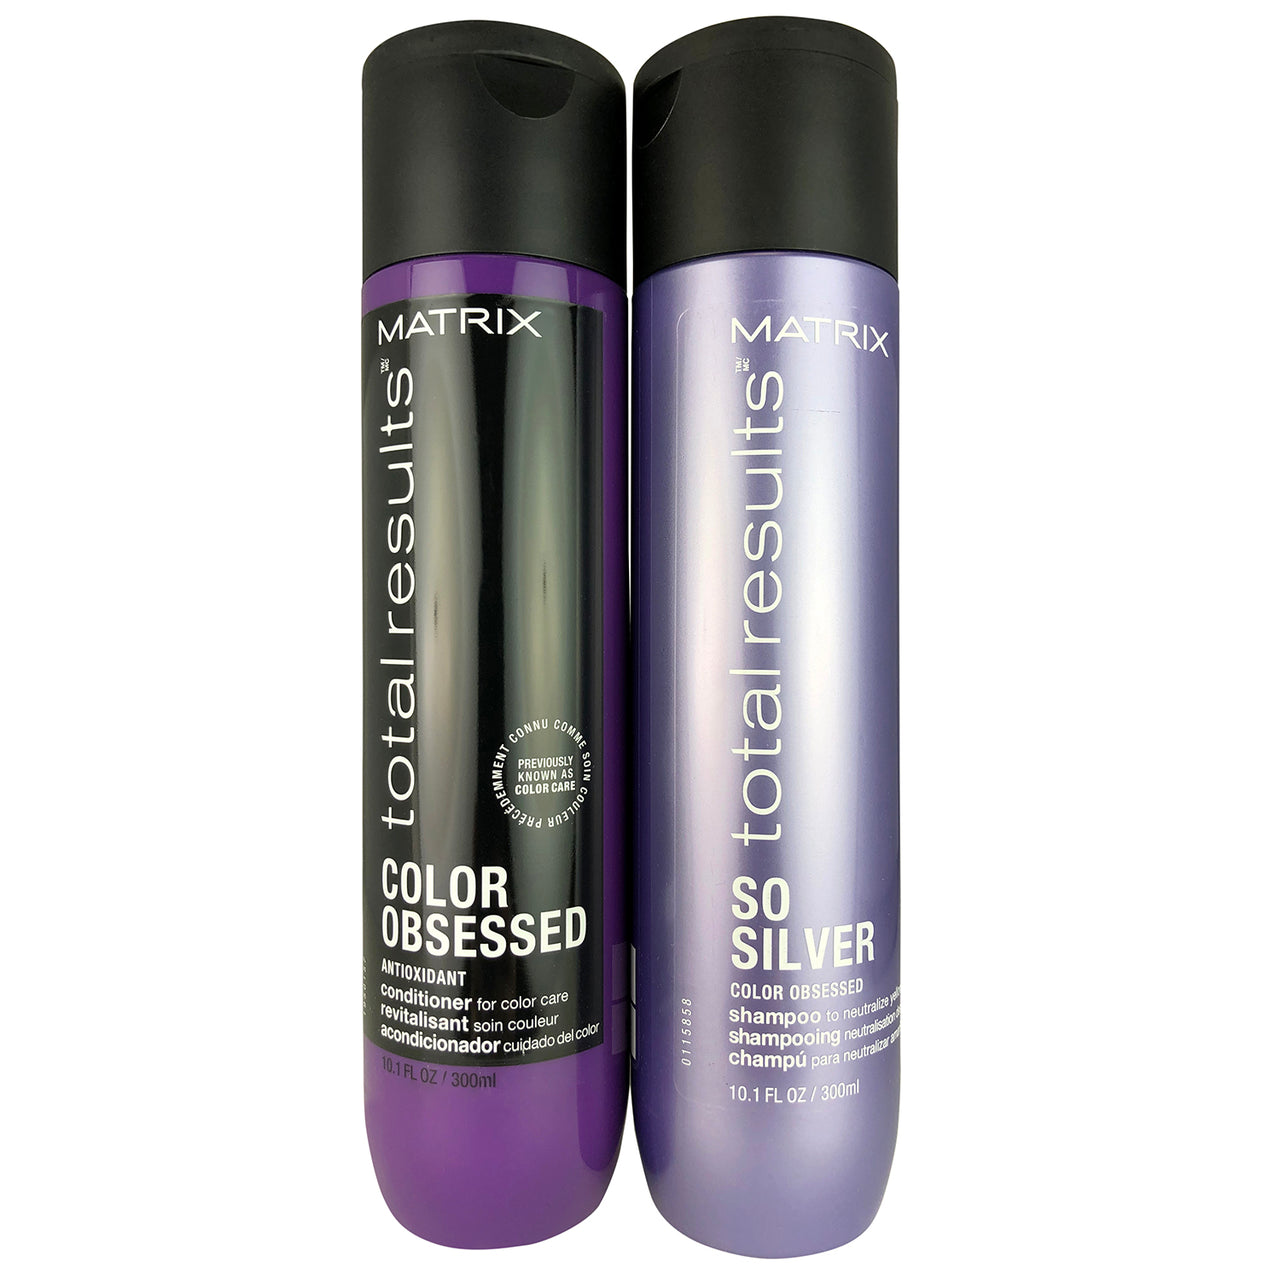 Matrix Total Results So Silver Color Obsessed Hair Shampoo and Conditioner Duo 10.1 oz Each